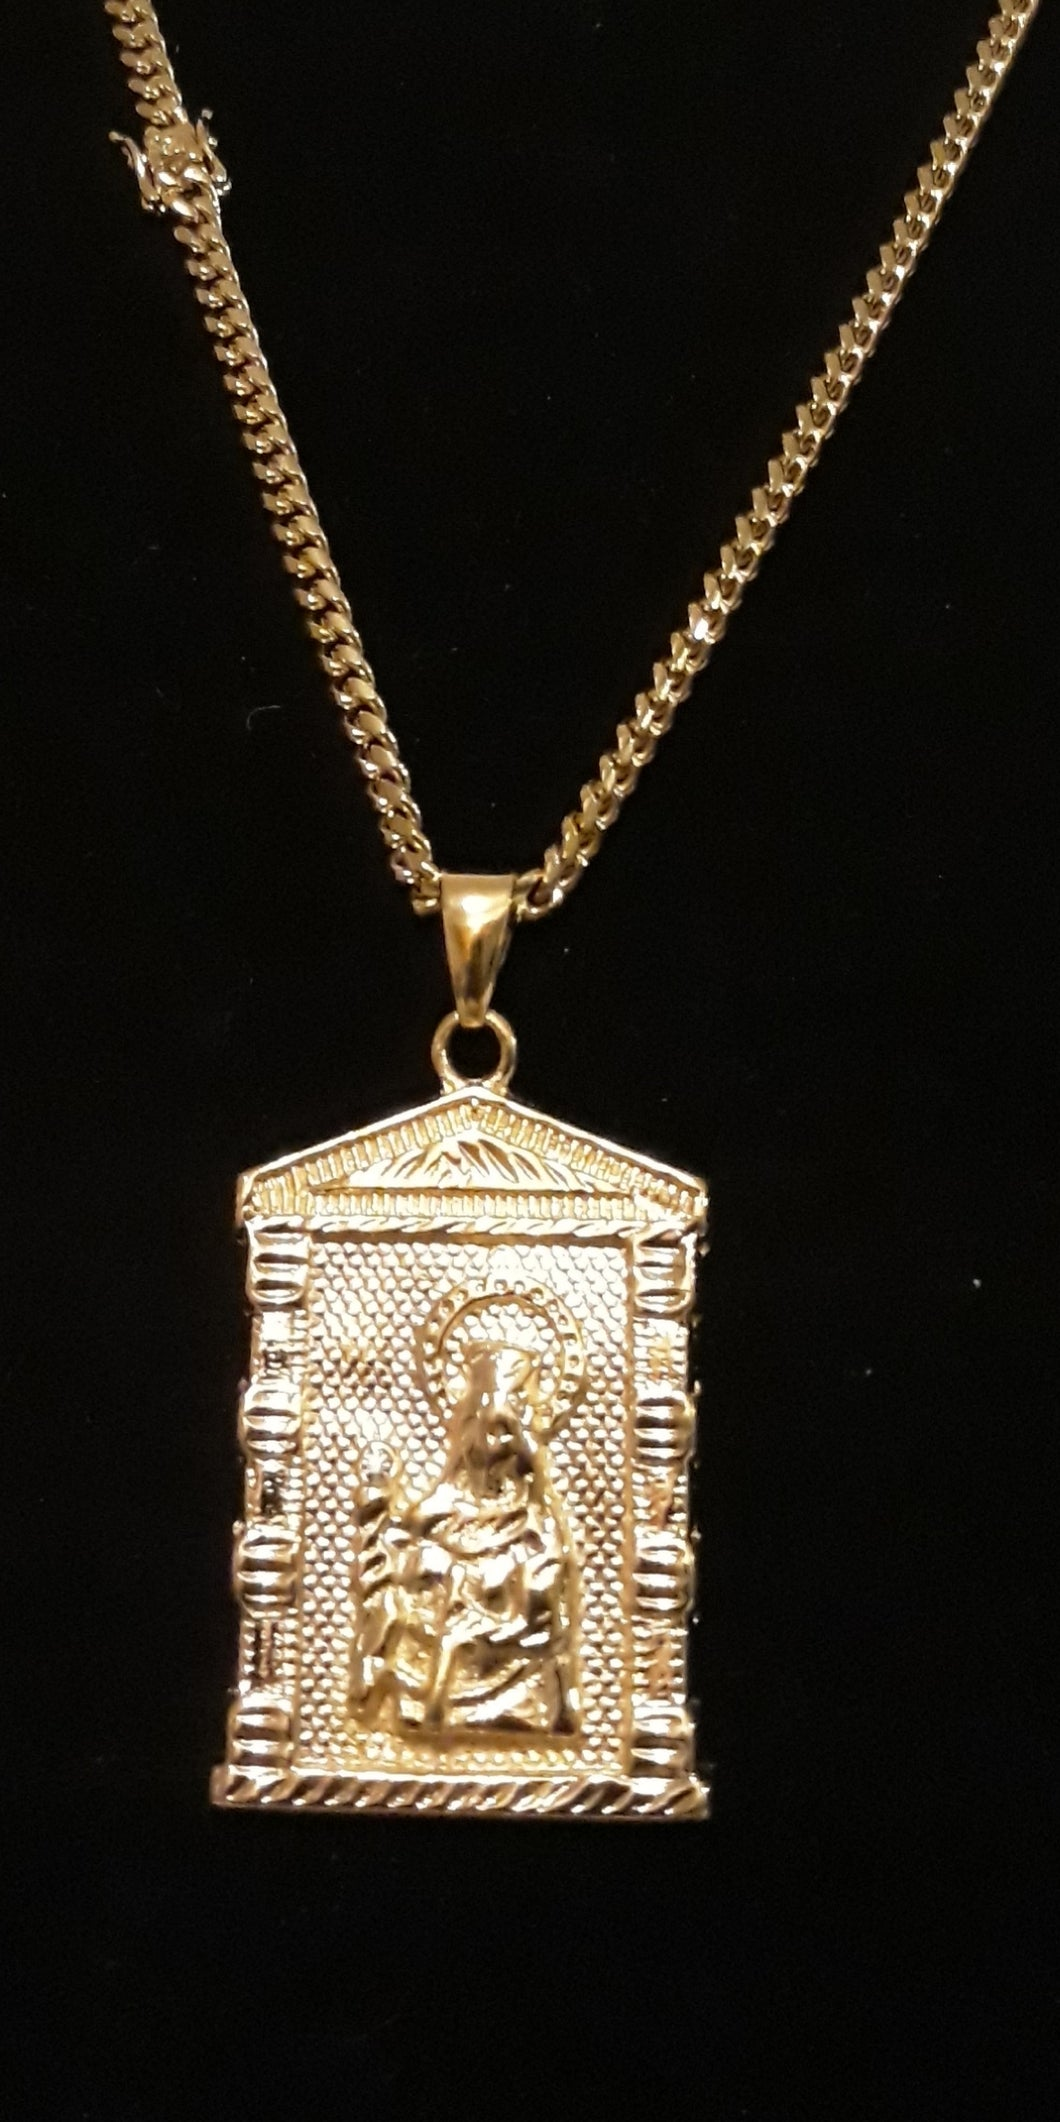 14k Gold filled pendant